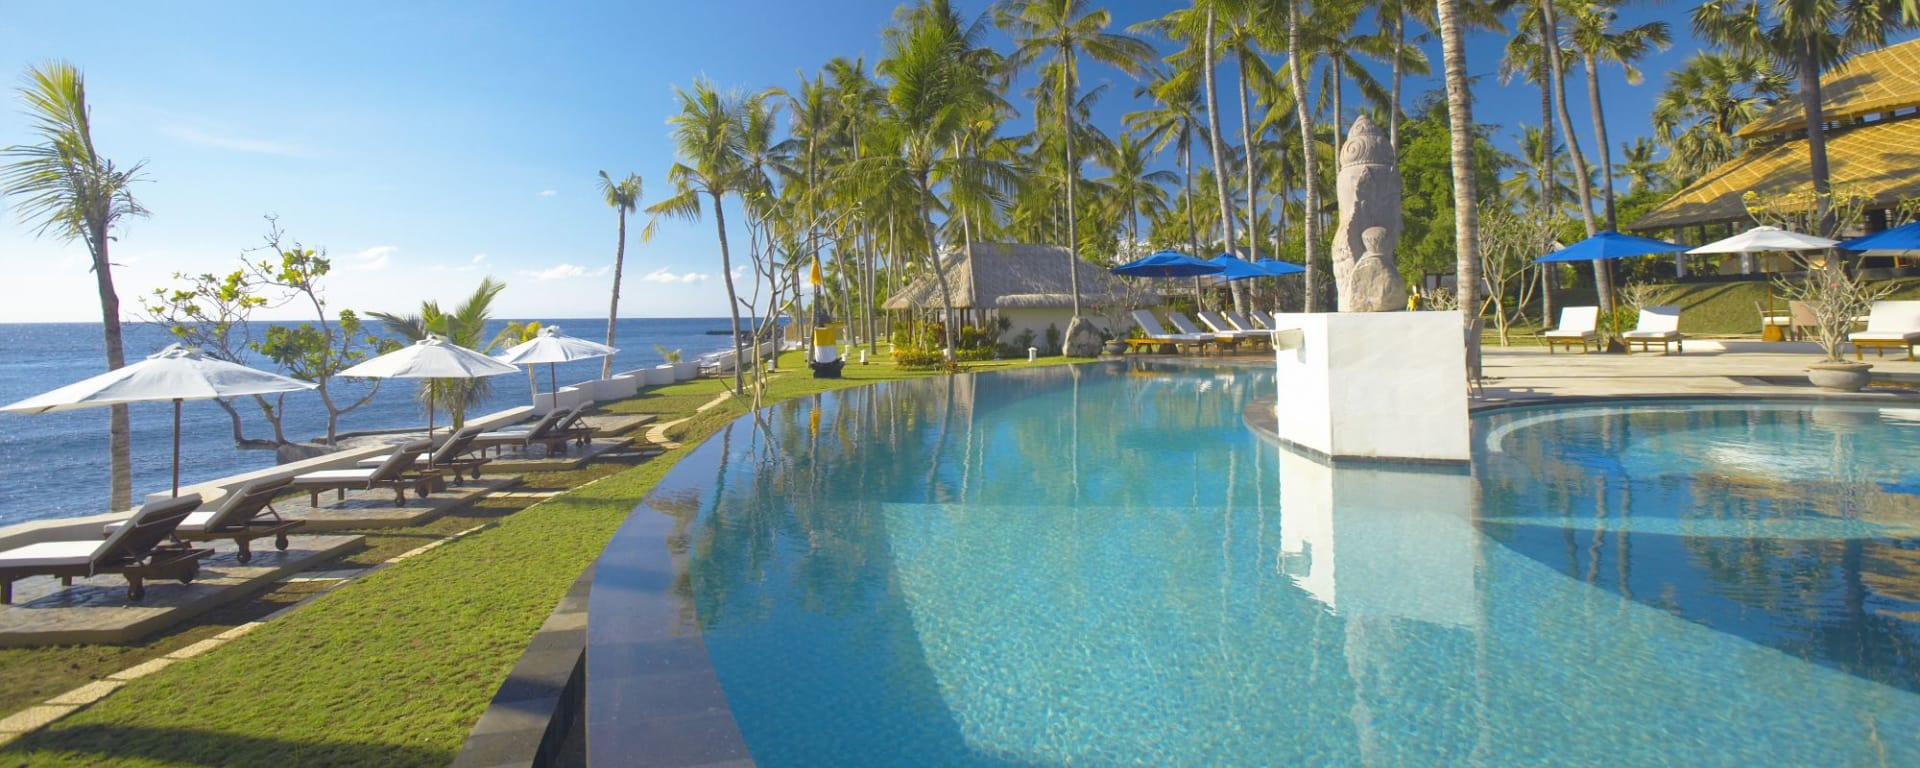 Siddhartha Ocean Front Resort & Spa in Ostbali: